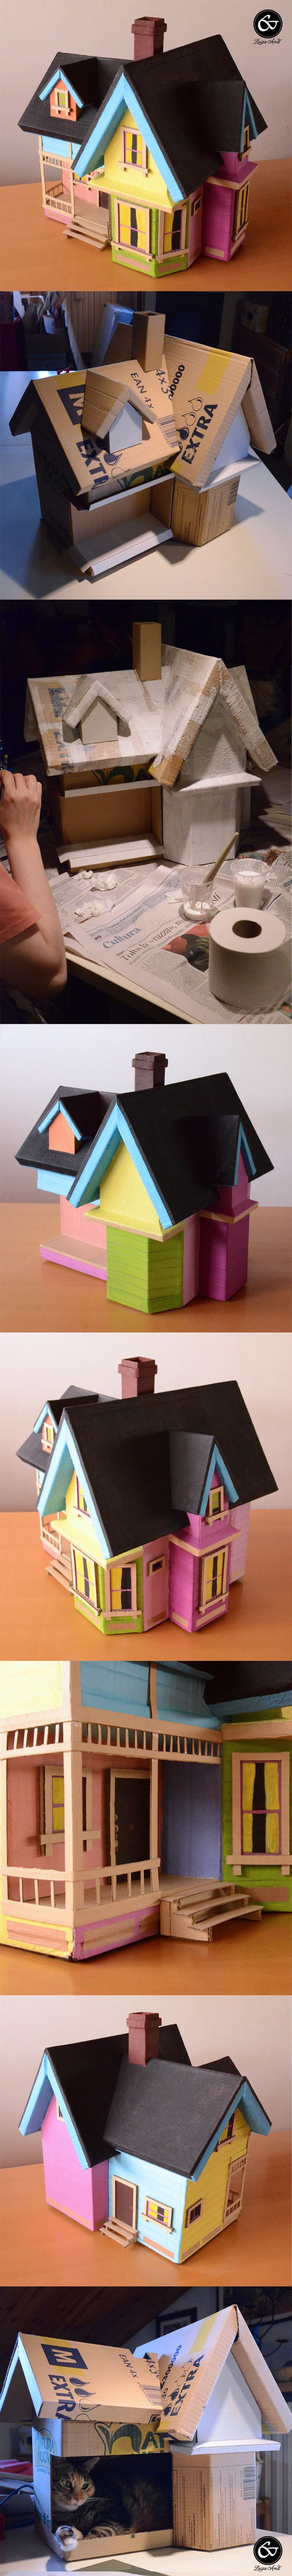 Casa de la película Up hecha con cajas de cartón reciclado! Basta con crear la estructura con cartón, añadir un poco de papel higiénico pegamento y, los colores, añadir todos los detalles y voilà - Up House from recycled cardboard boxes, even my cat wants it for itself! Just create the structure with cardboard, add some glue and toilet paper, add the colors, add all the details and voilà... a fantastic Up house!